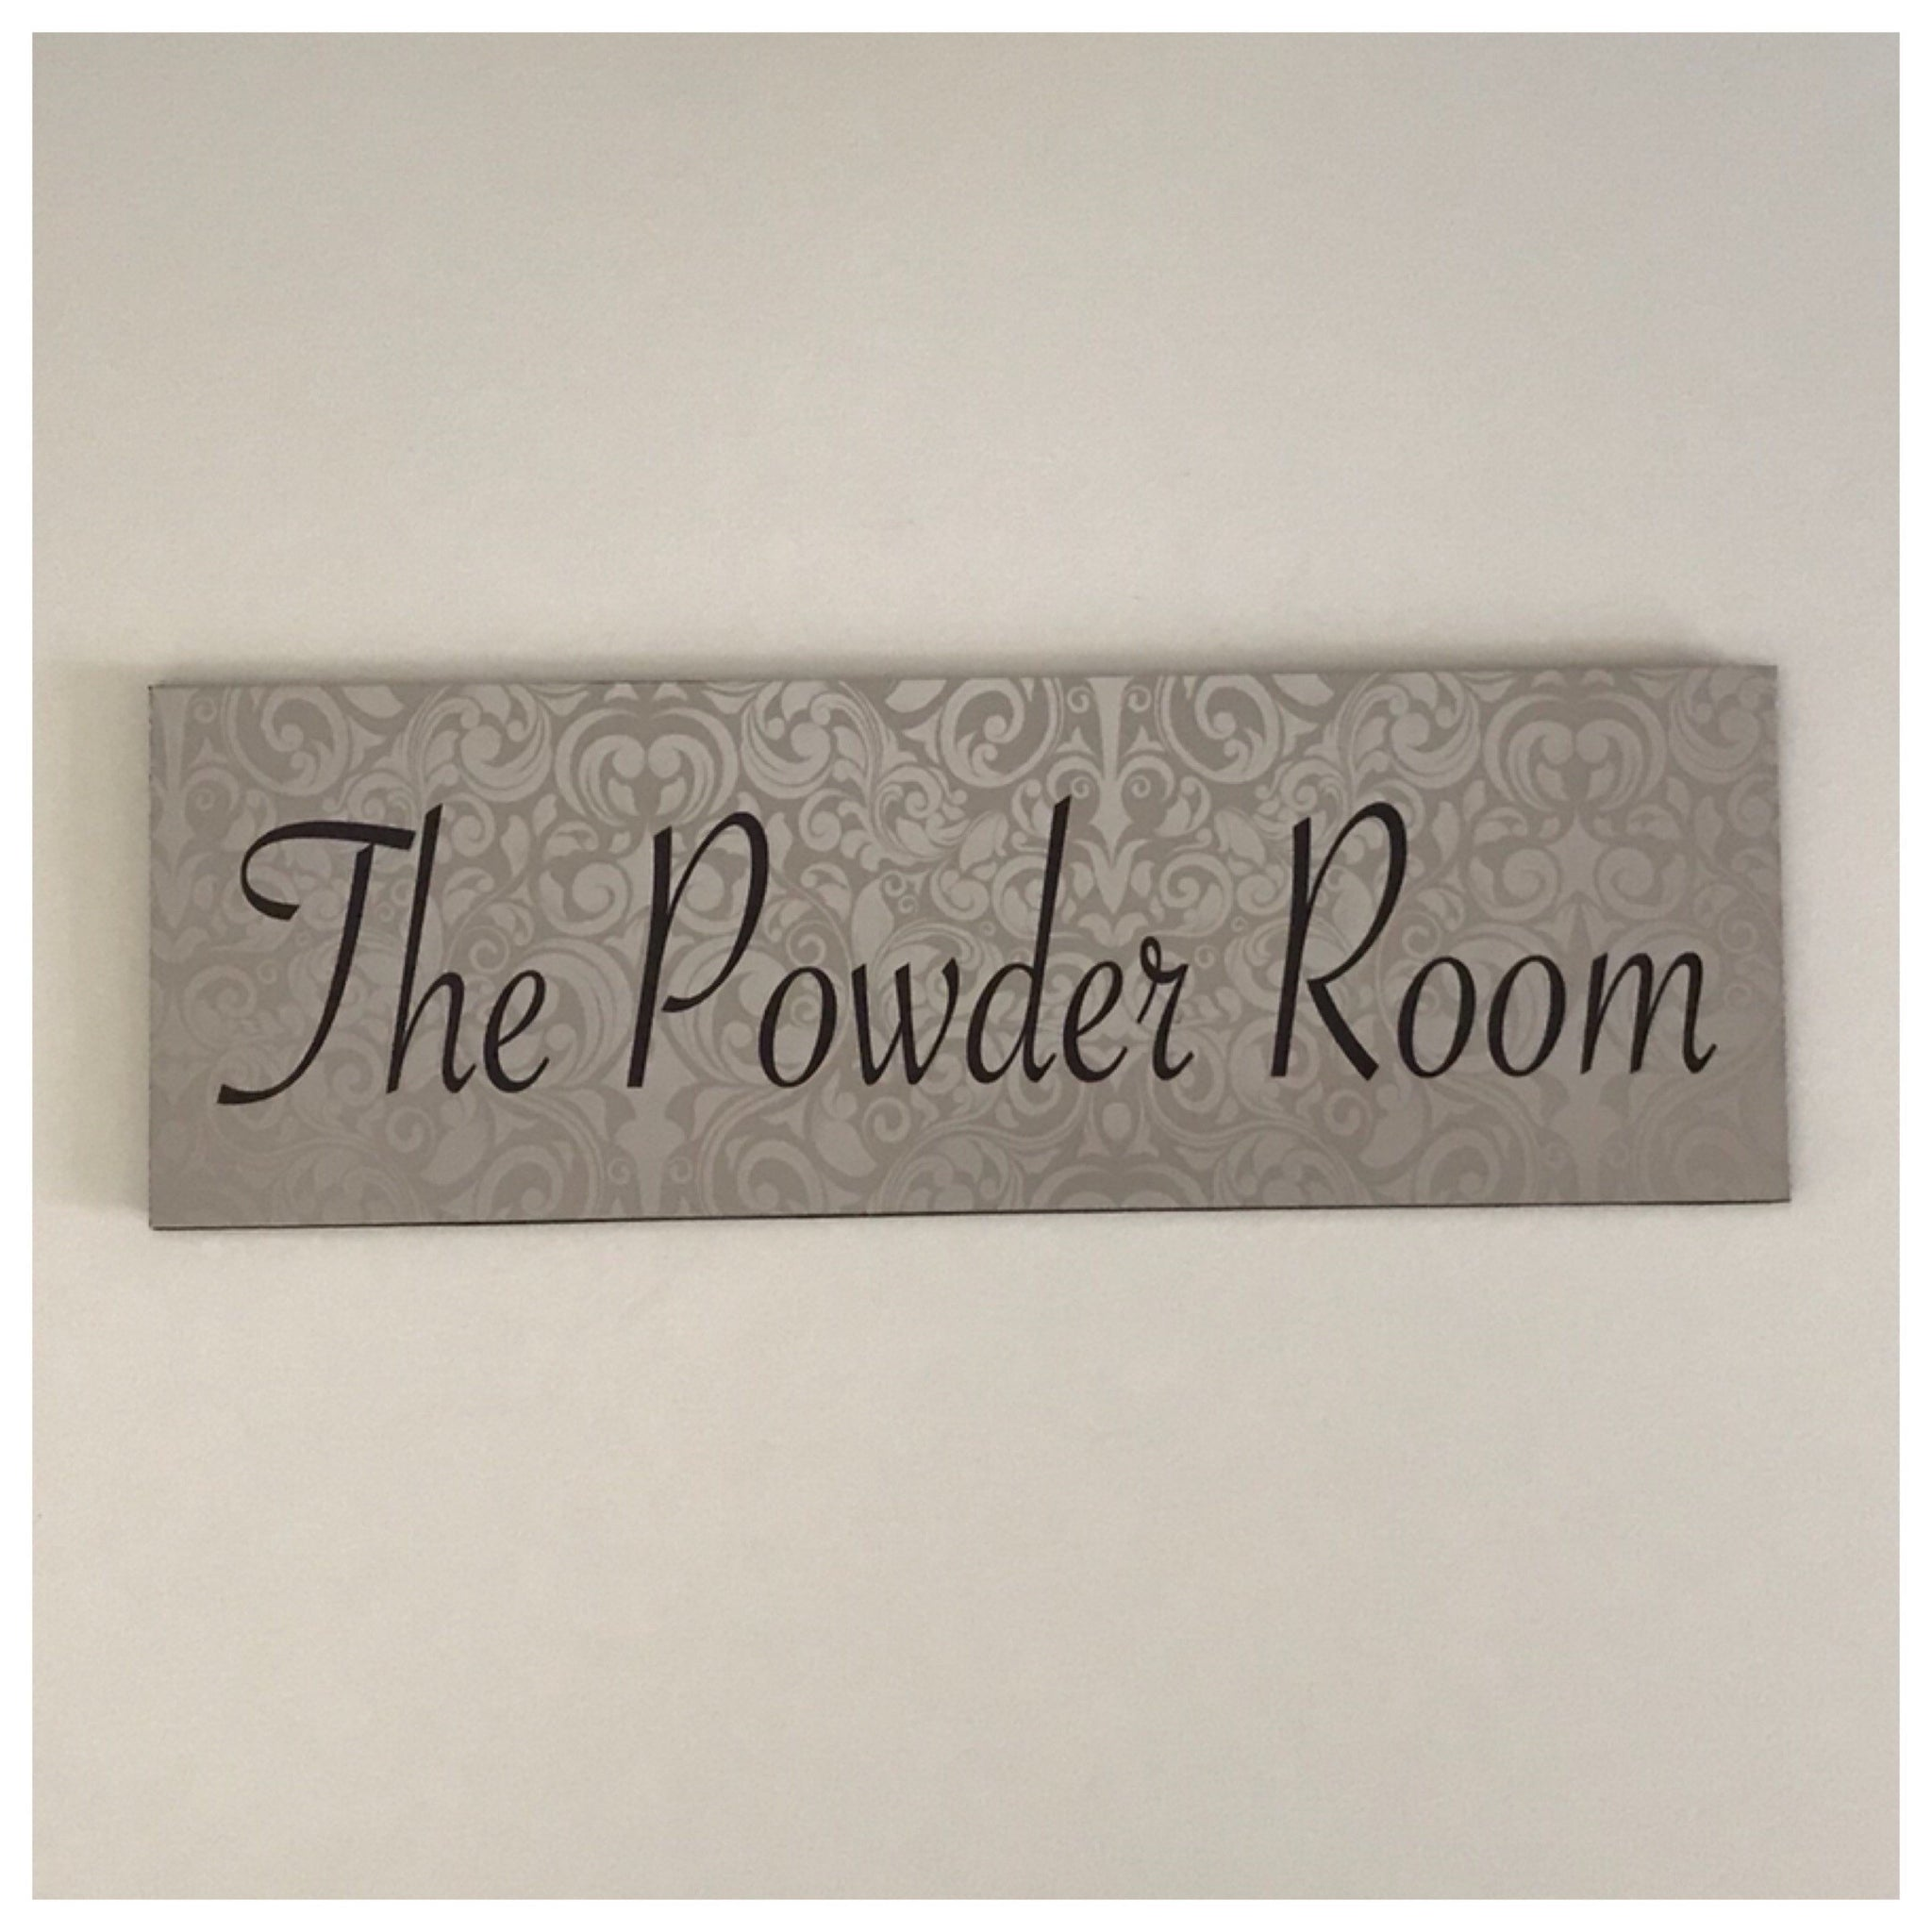 The Powder Room Silver Sign Plaque or Hanging Plaques & Signs The Renmy Store